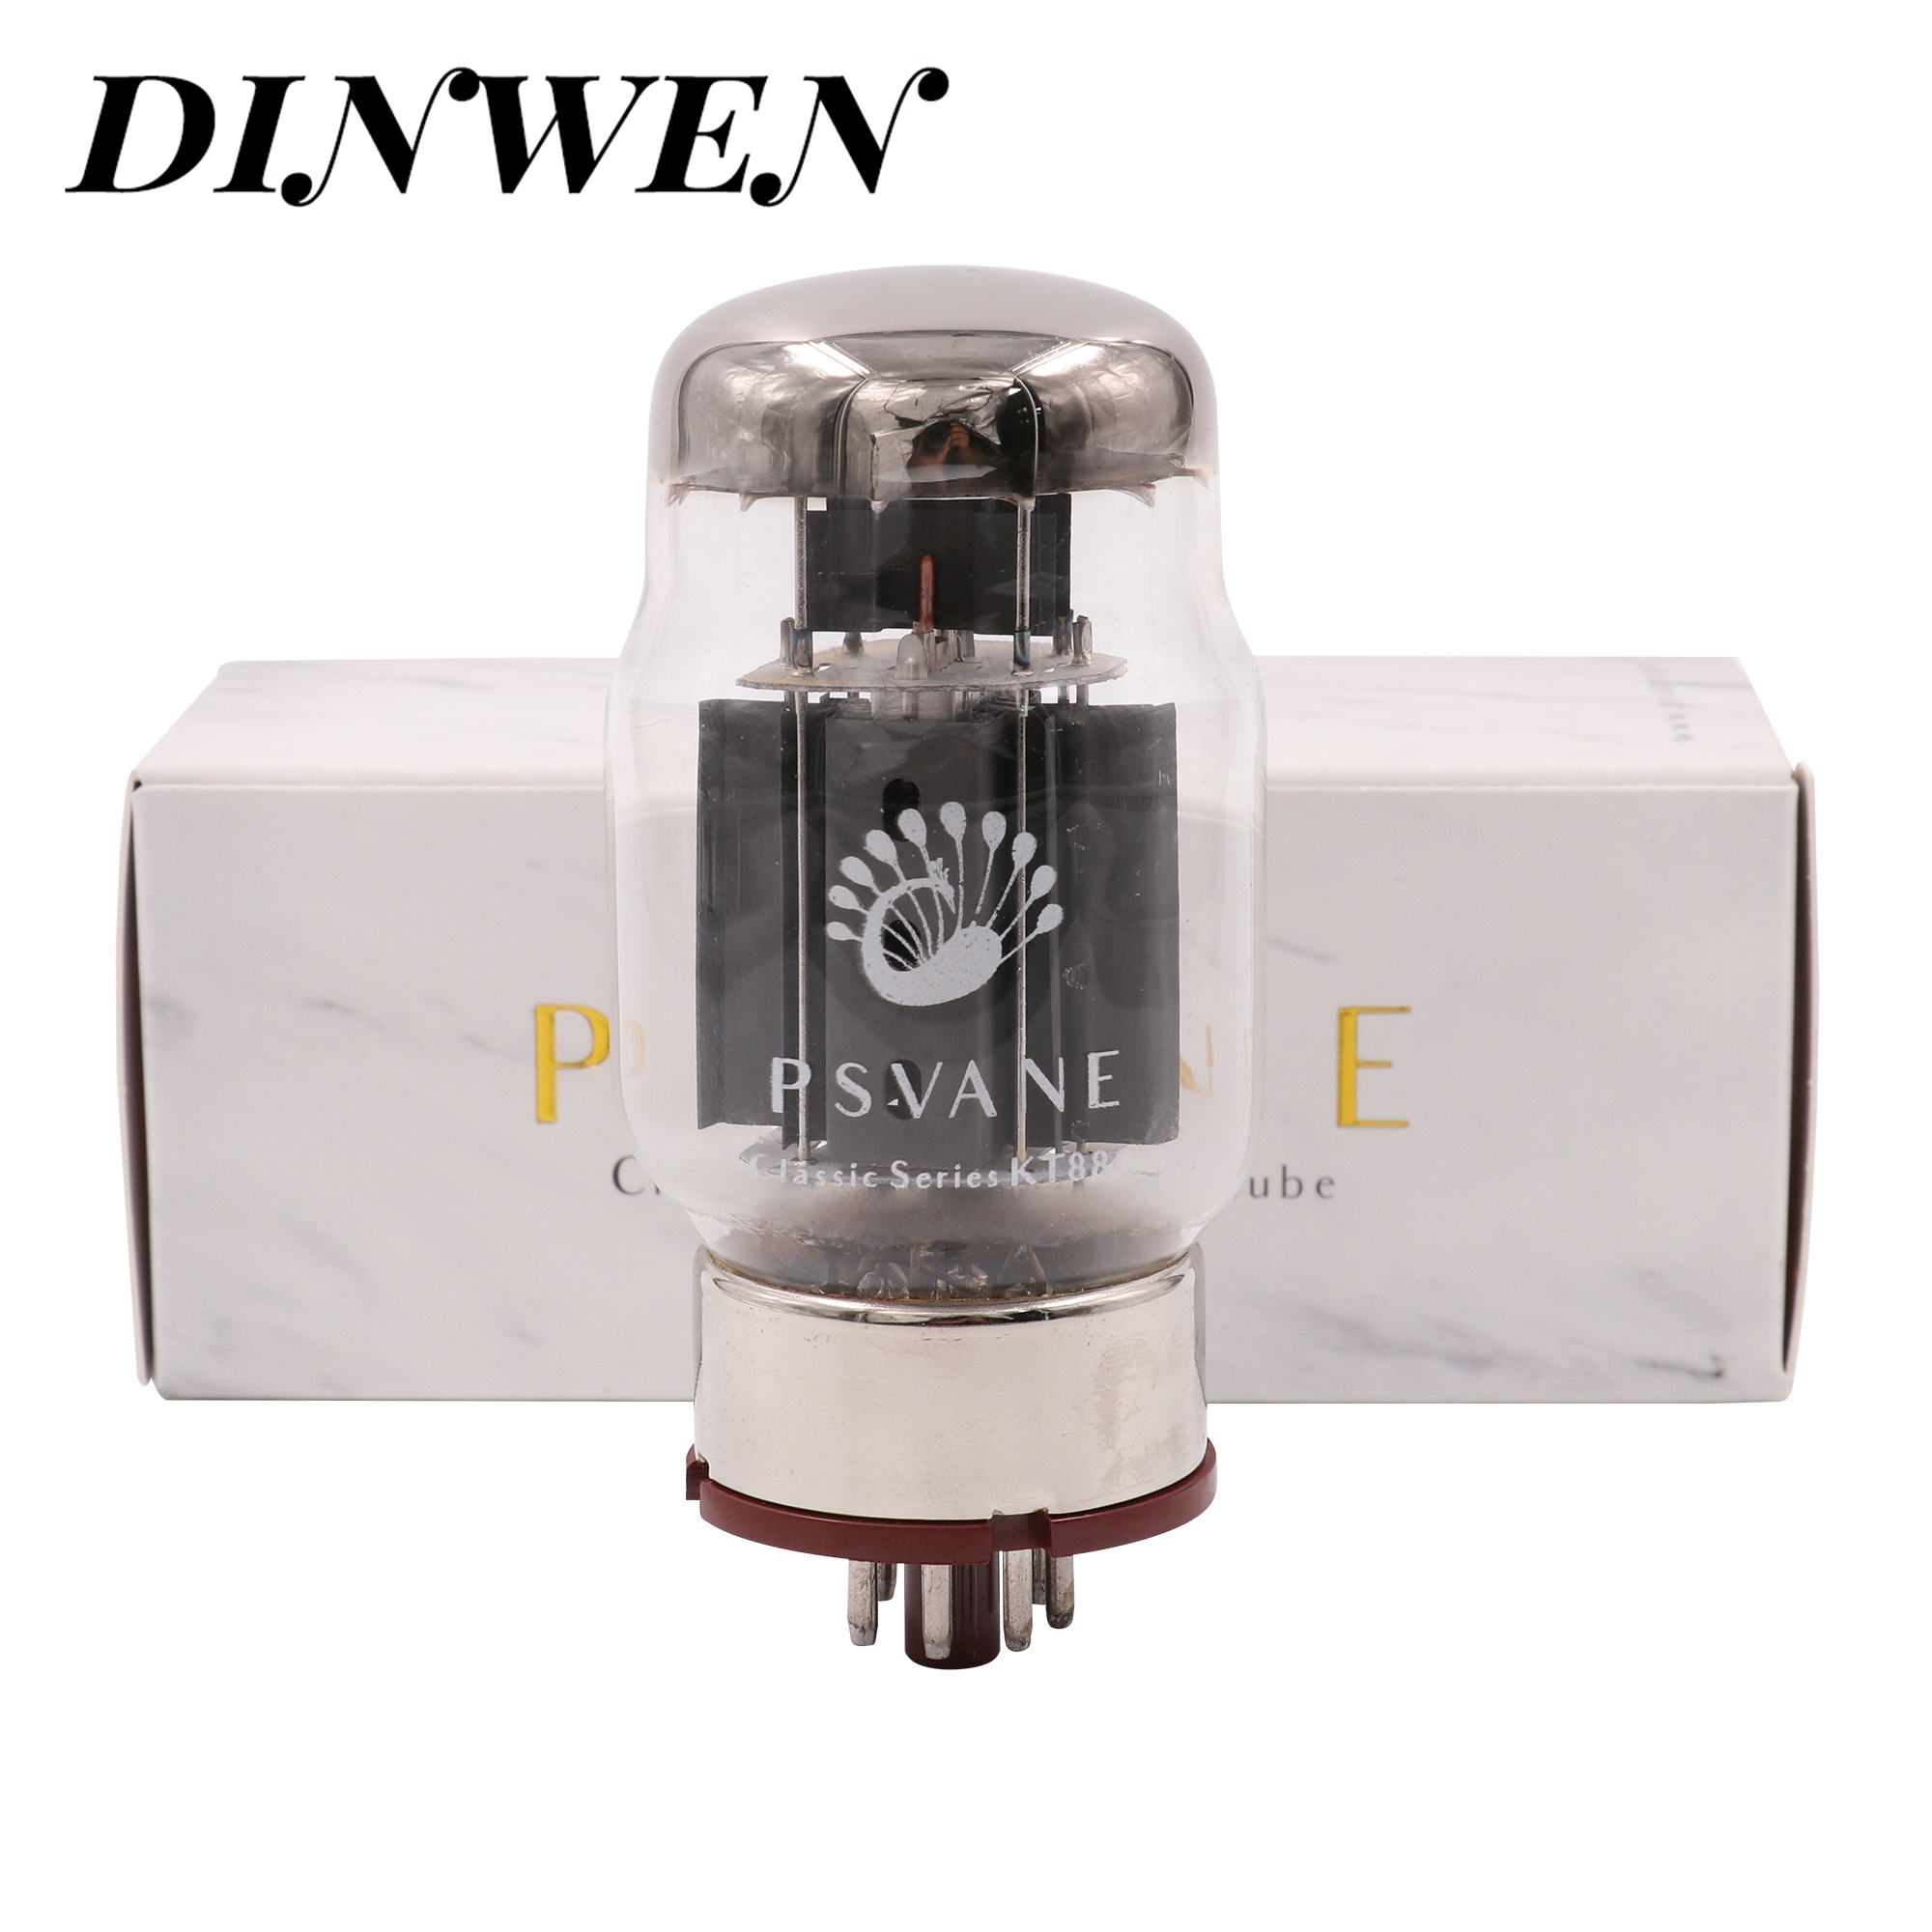 KT88 VACUUM TUBE Psvane HiFI KT88/C Electronic VALVE tubes Replace 6550  for Vintage Audio Amplifier DIY Matched Tested